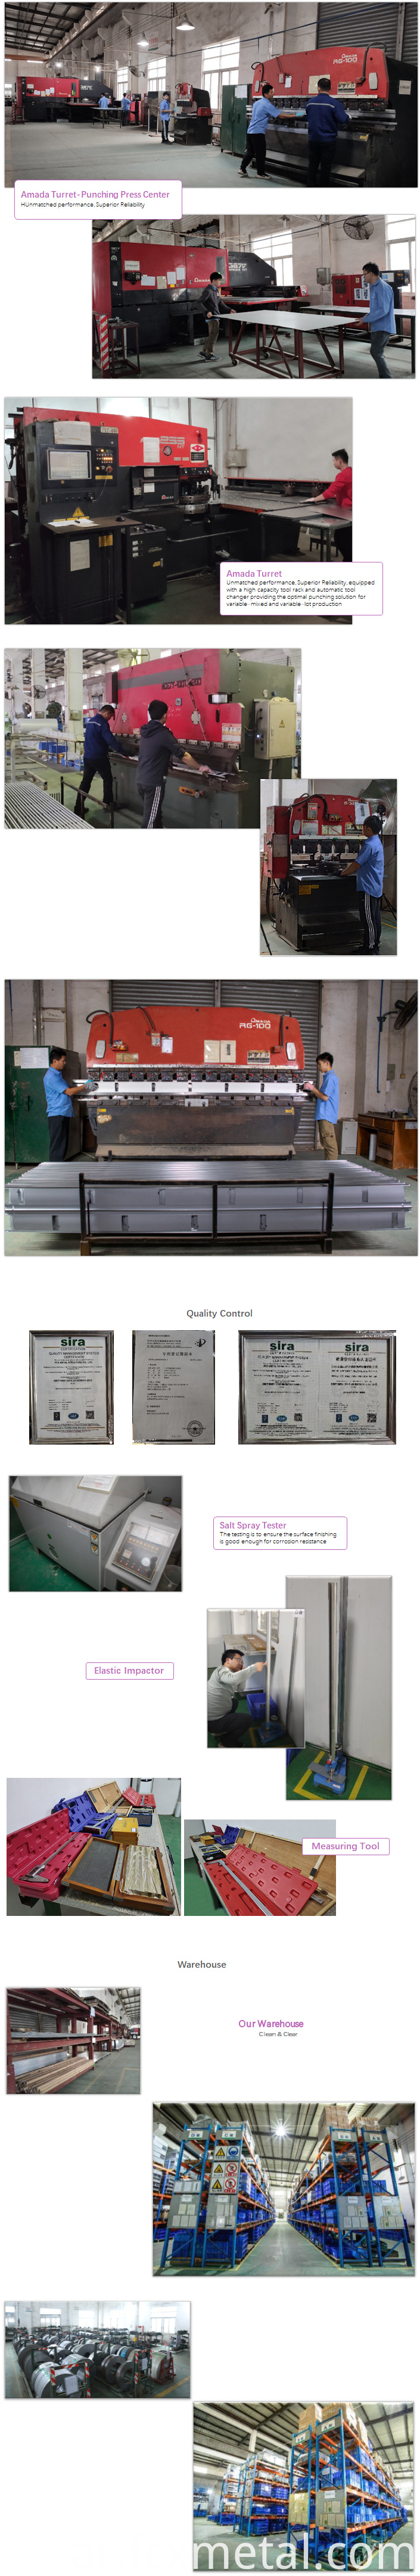 Sheet metal cabinets for place servers